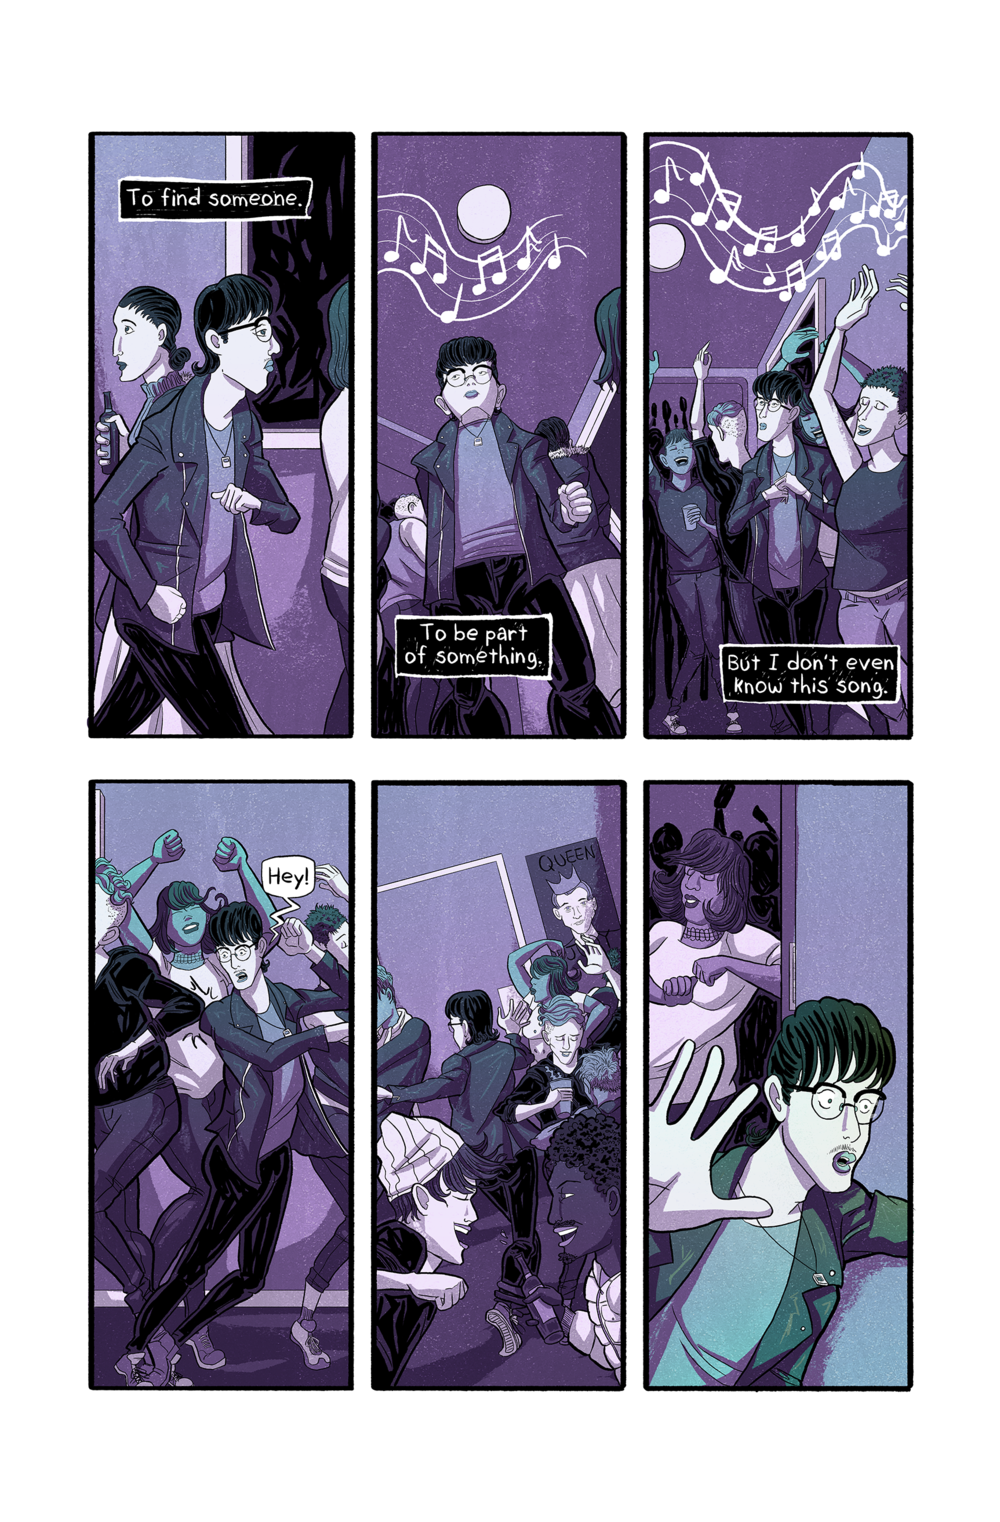 02untitled sad gay boy comic - page 06.png